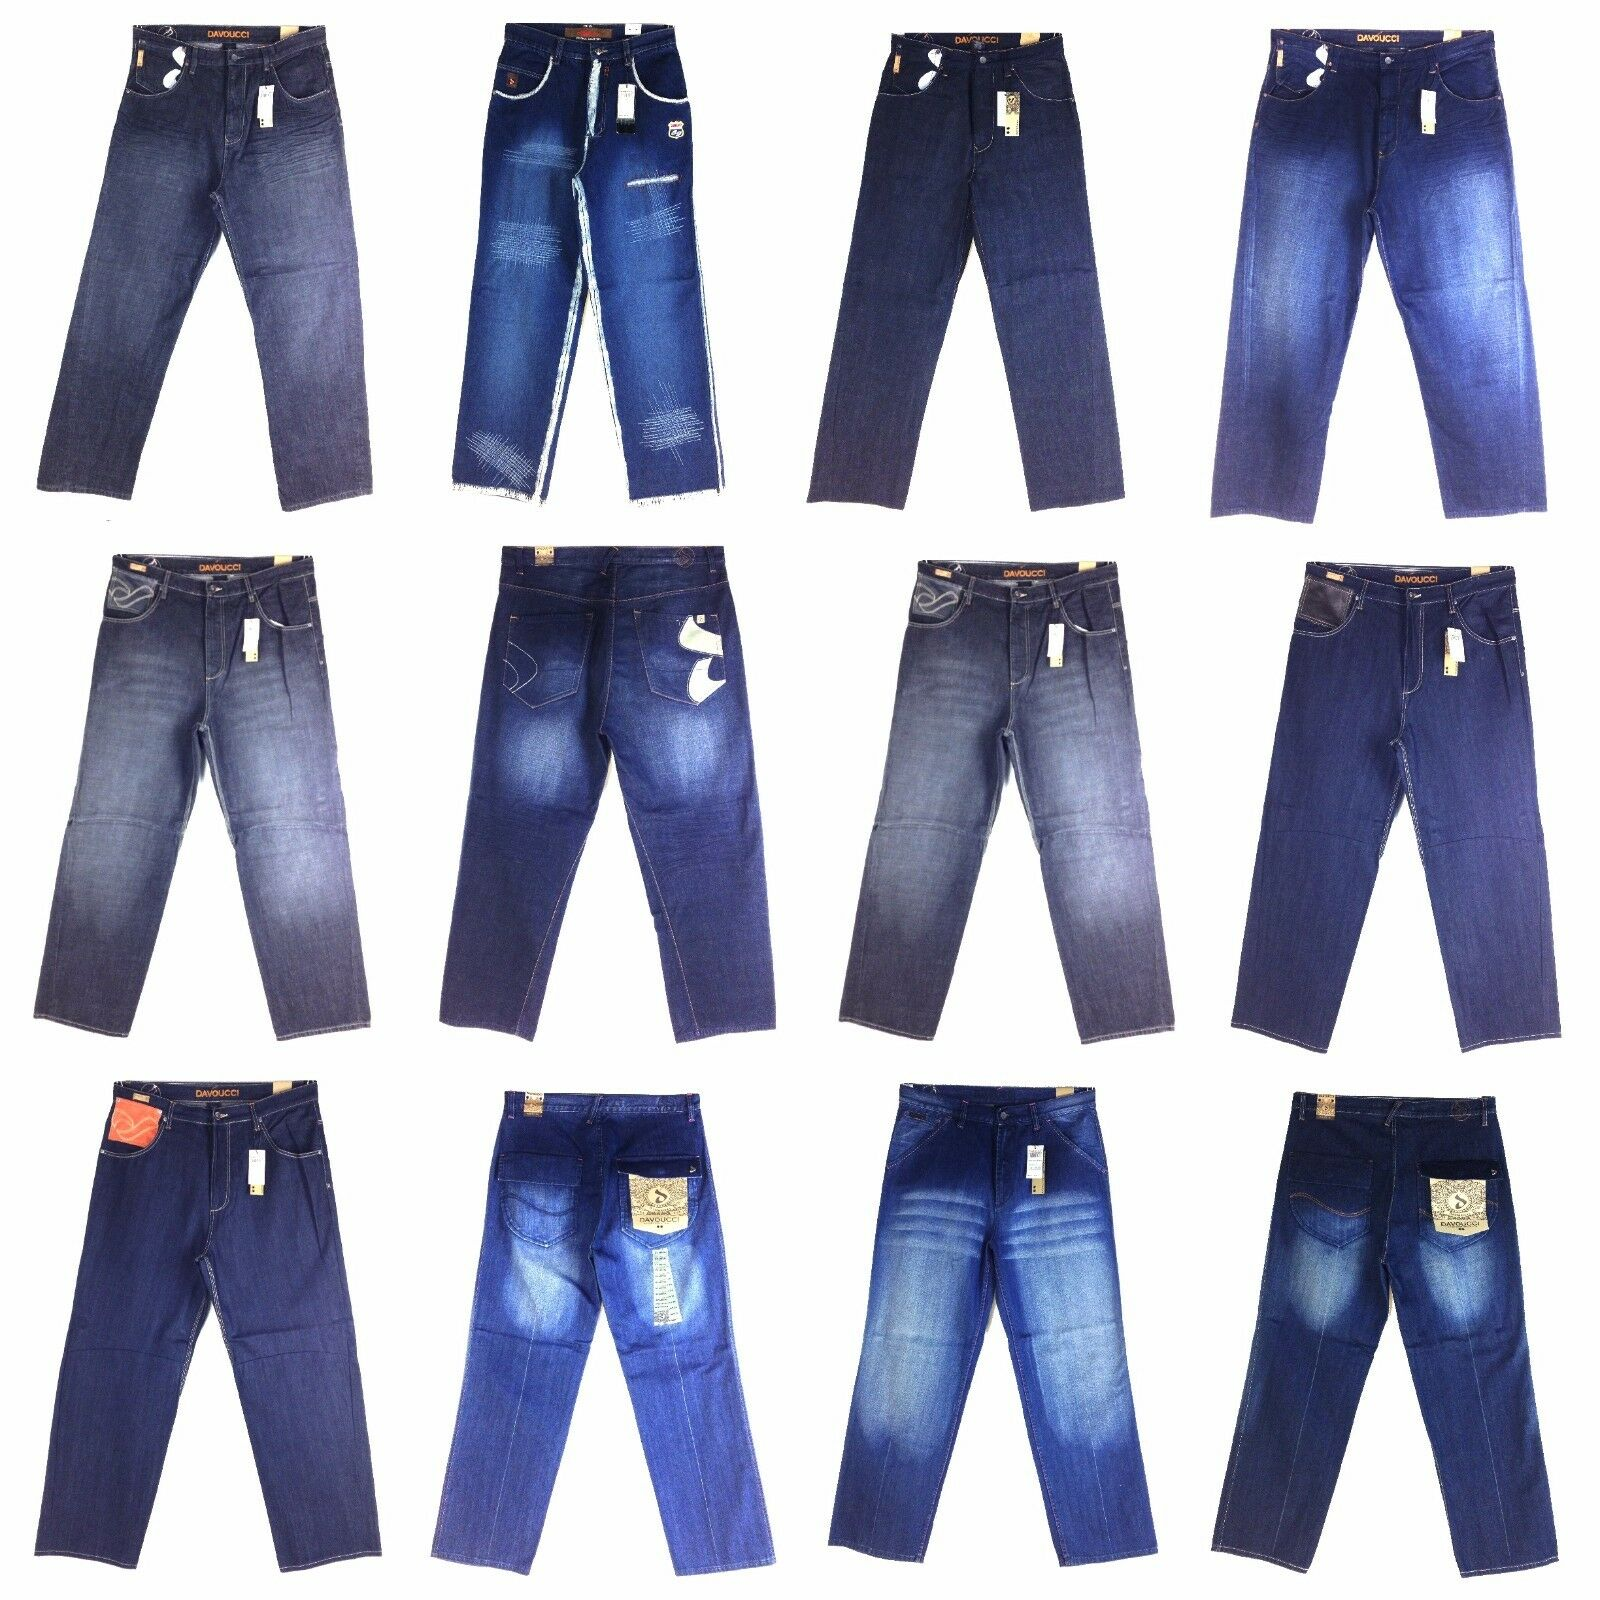 605aa1b3 MEN'S DESIGNER NEW JEAN ASSORTED STYLES GROUP (2), DAVOCCI ...